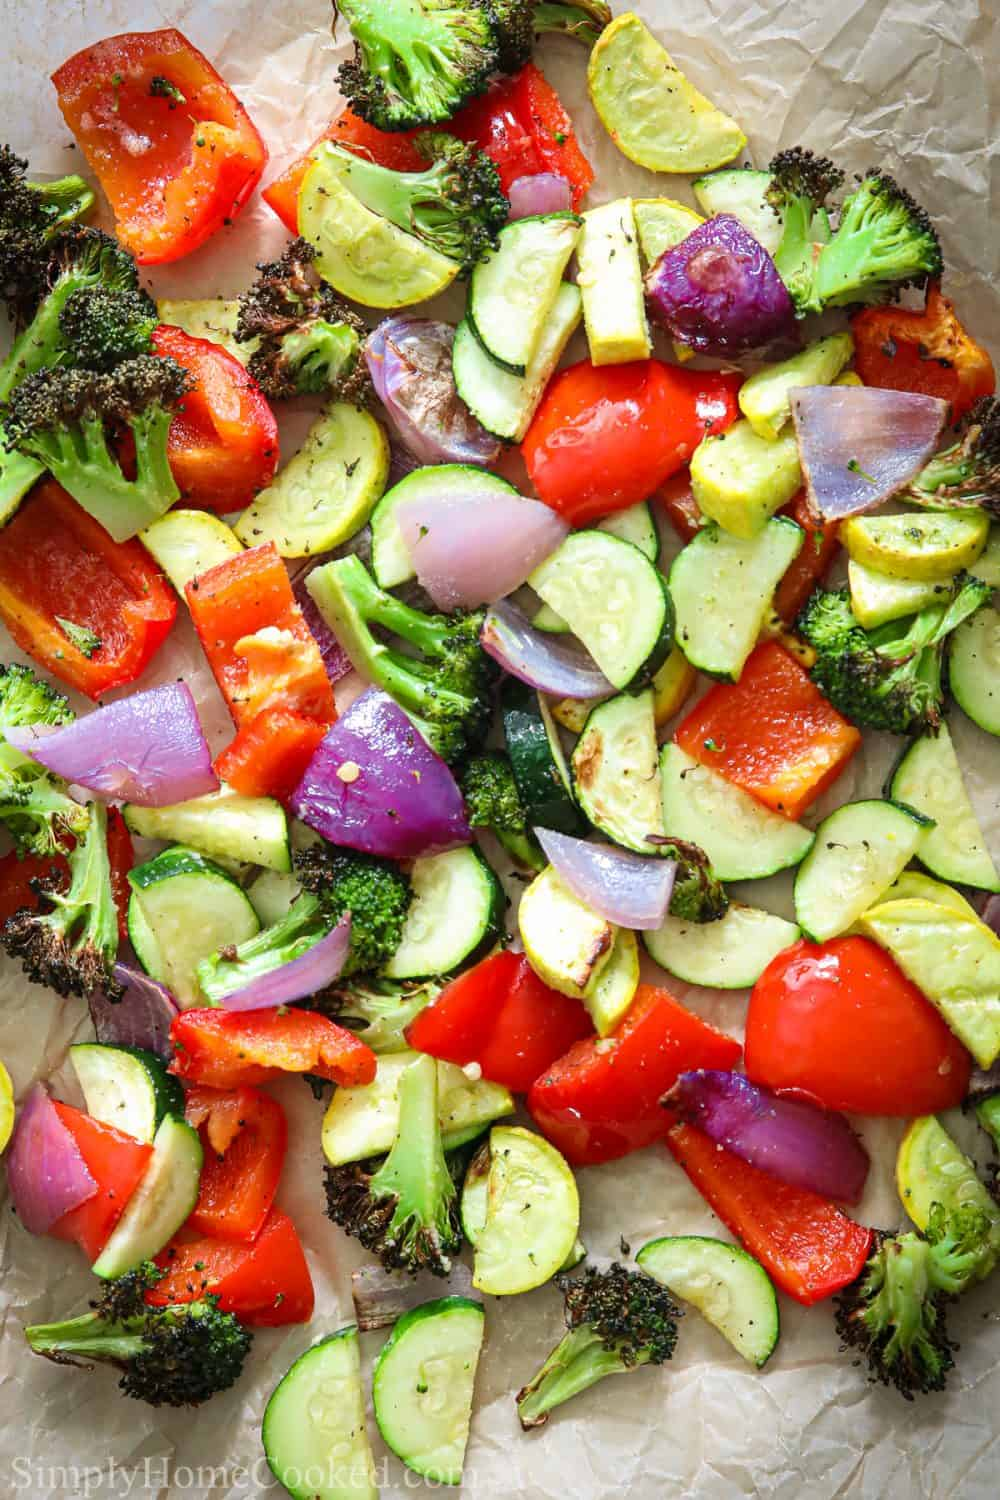 Close up of Roasted Air Fryer Vegetables, including red bell peppers, zucchini, squash, red onion, and broccoli.